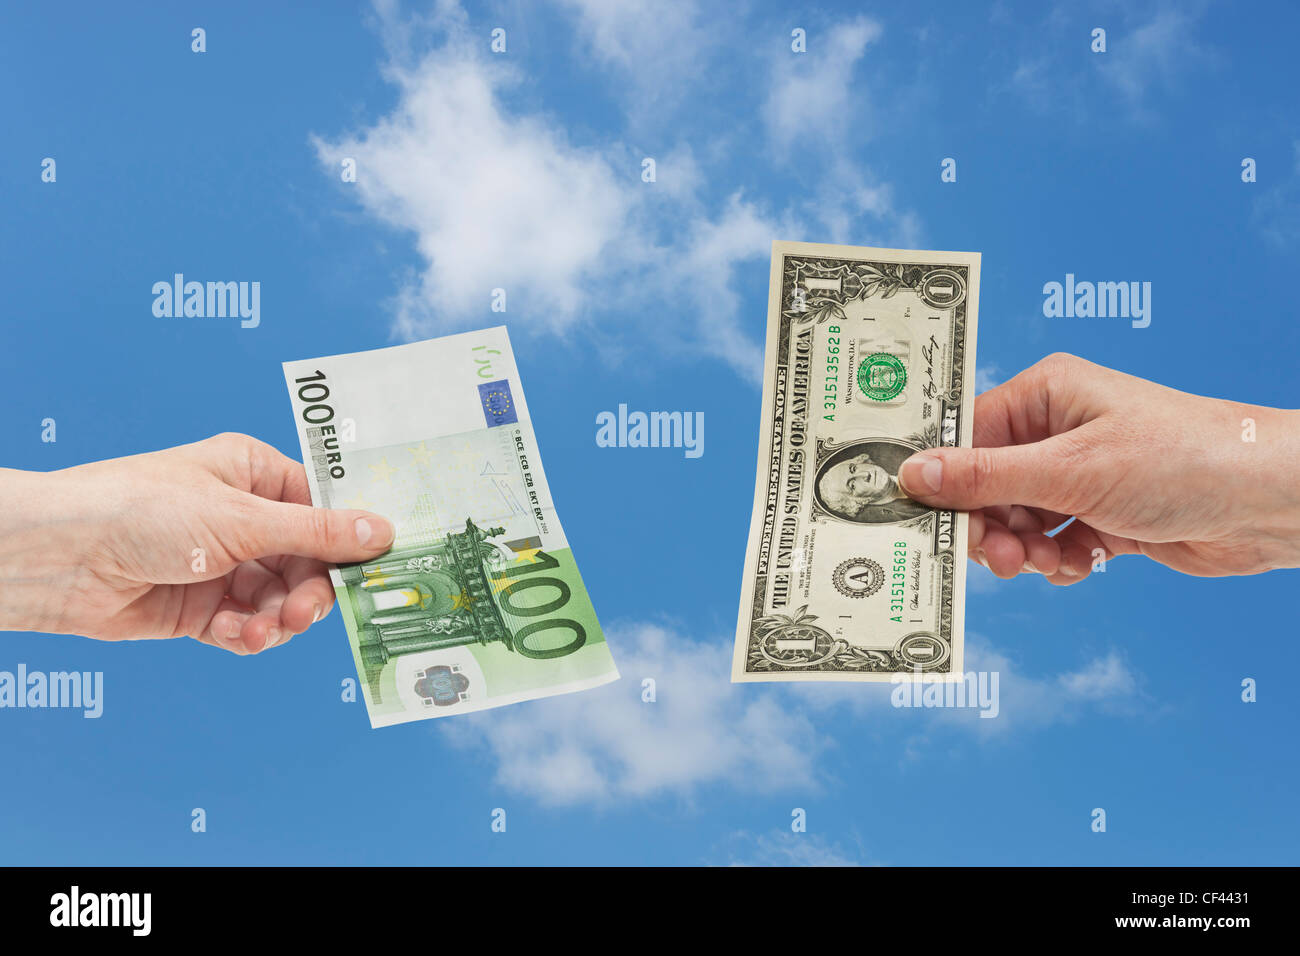 One 1 U.S. Dollar bill is held in the hand. At the other side a 100 Euro bill is held in the hand. Sky is in the - Stock Image